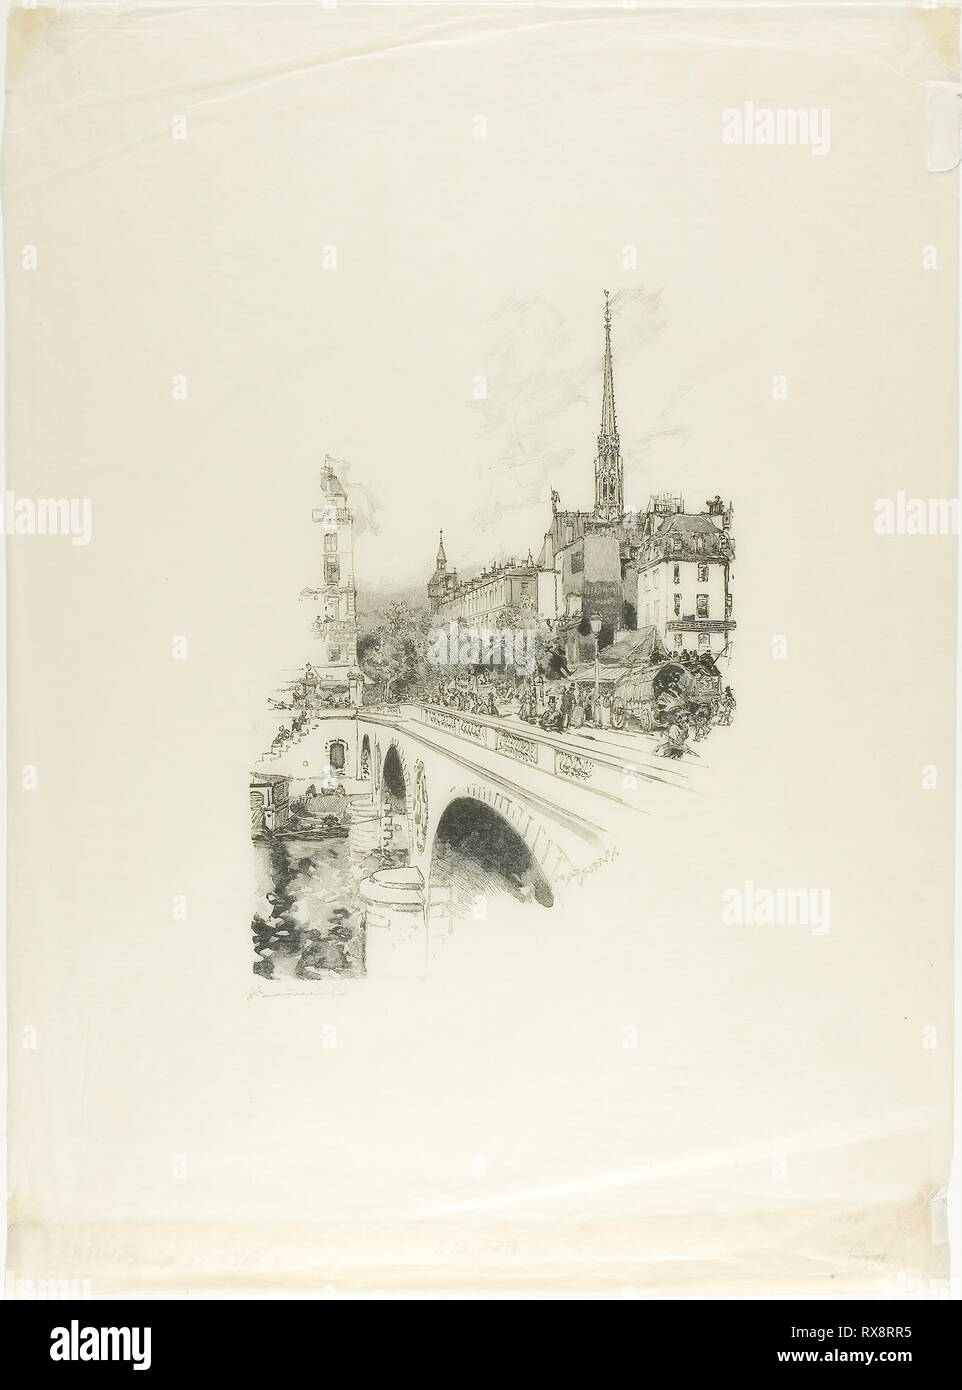 Le Pont Saint-Michel. Louis Auguste Lepère; French, 1849-1918. Date: 1890. Dimensions: 235 × 162 mm (image); 429 × 315 mm (sheet, folded). Wood engraving in black on cream laid Japanese tissue. Origin: France. Museum: The Chicago Art Institute. - Stock Image